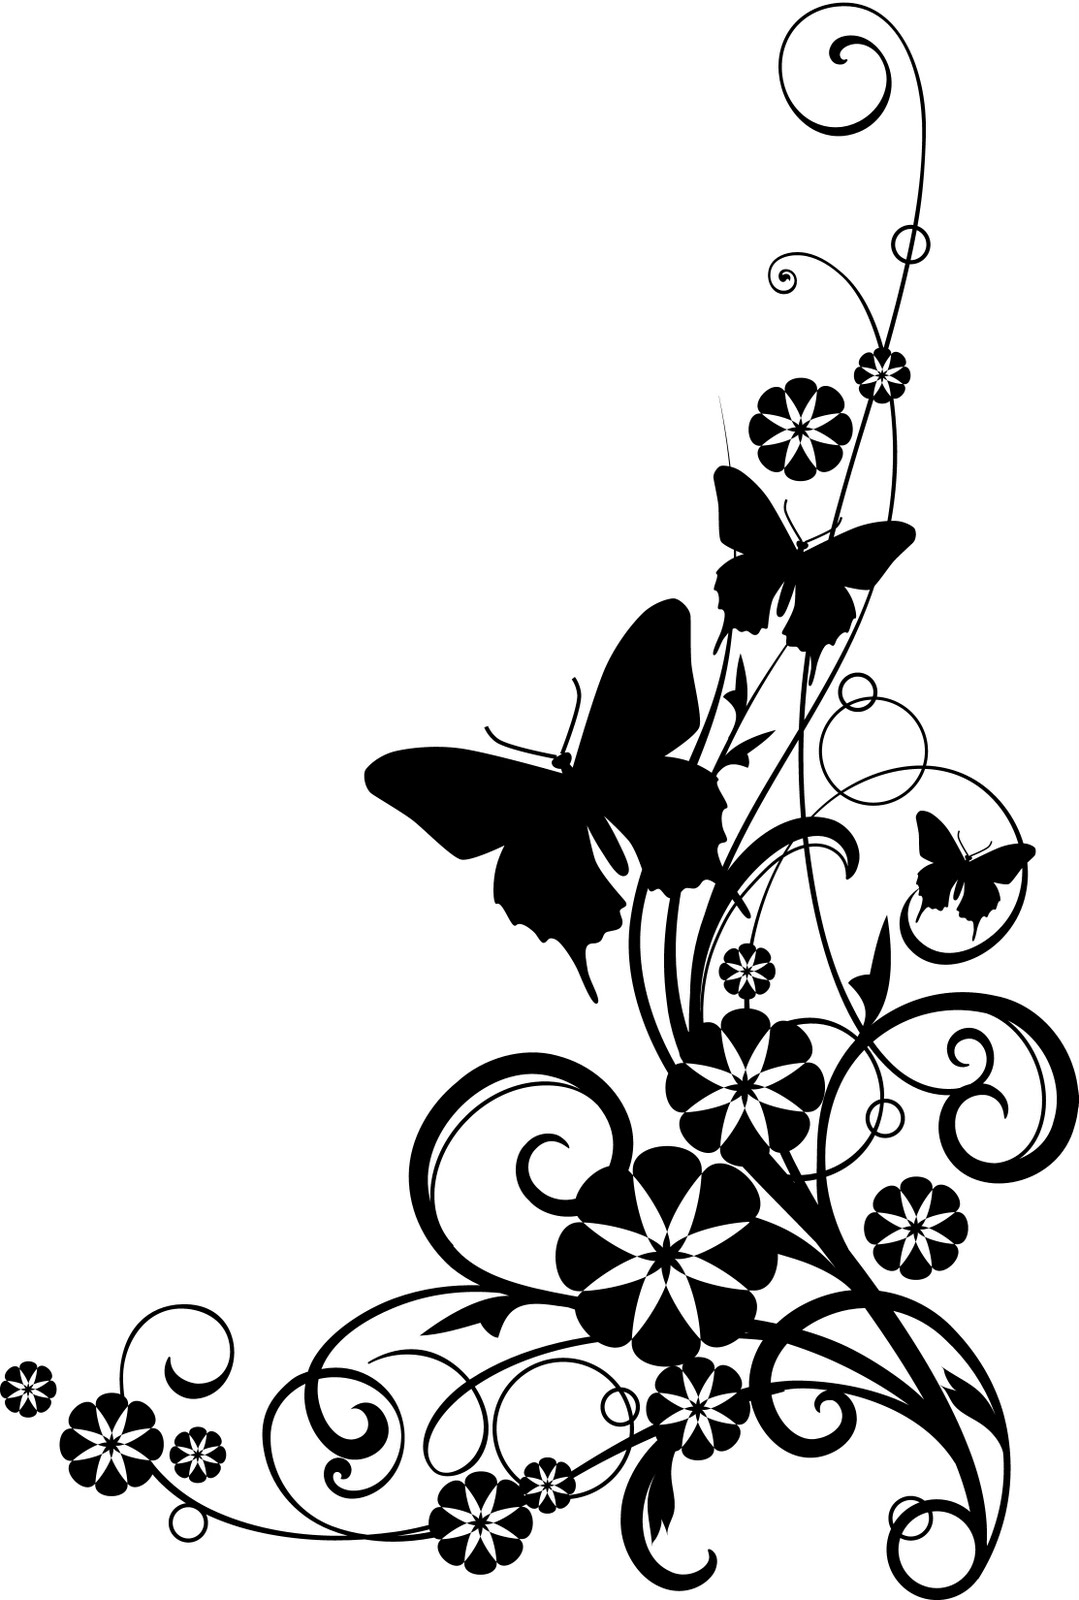 Flower Clip Art Black and White Butterfly